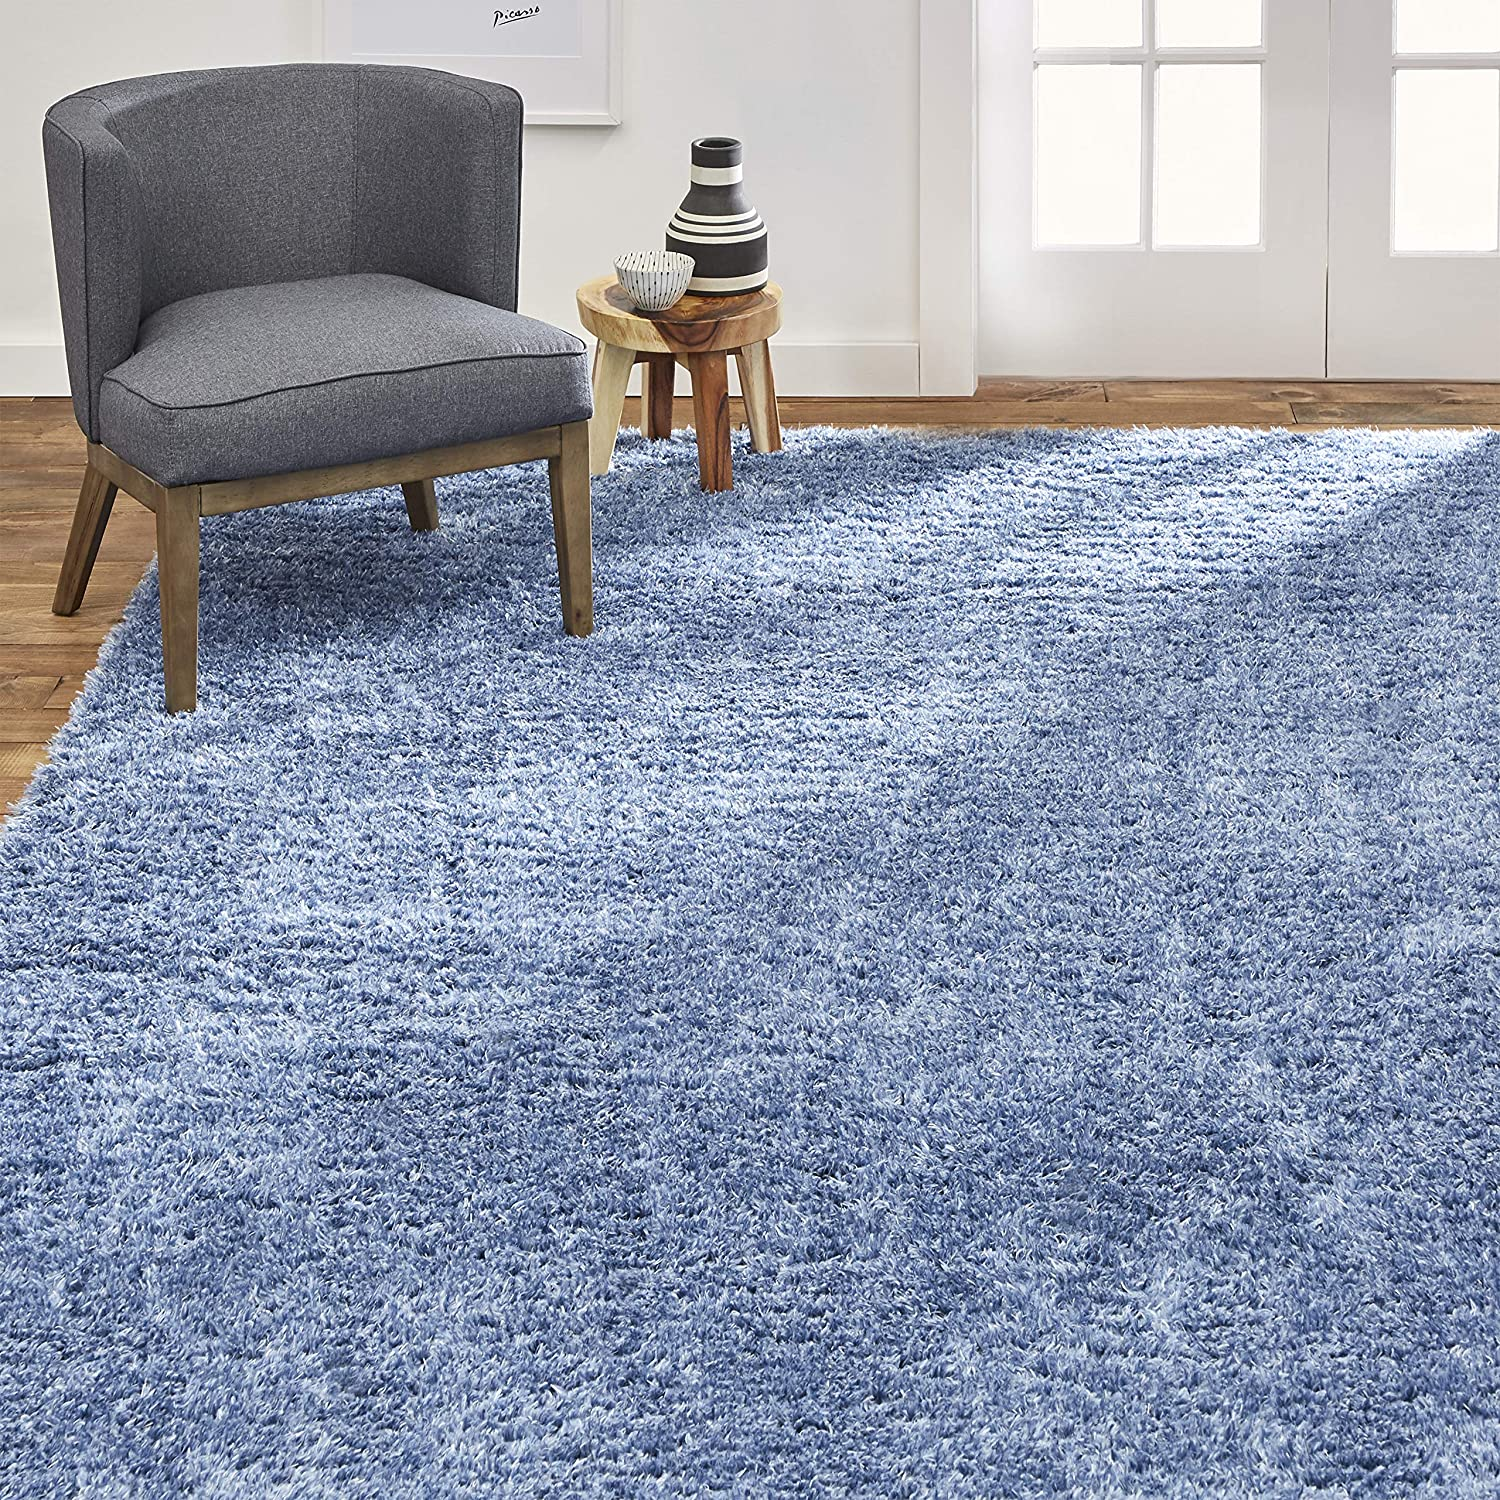 Home Dynamix Cambridge Animer and price 55% OFF revision Ames Rug 7'10